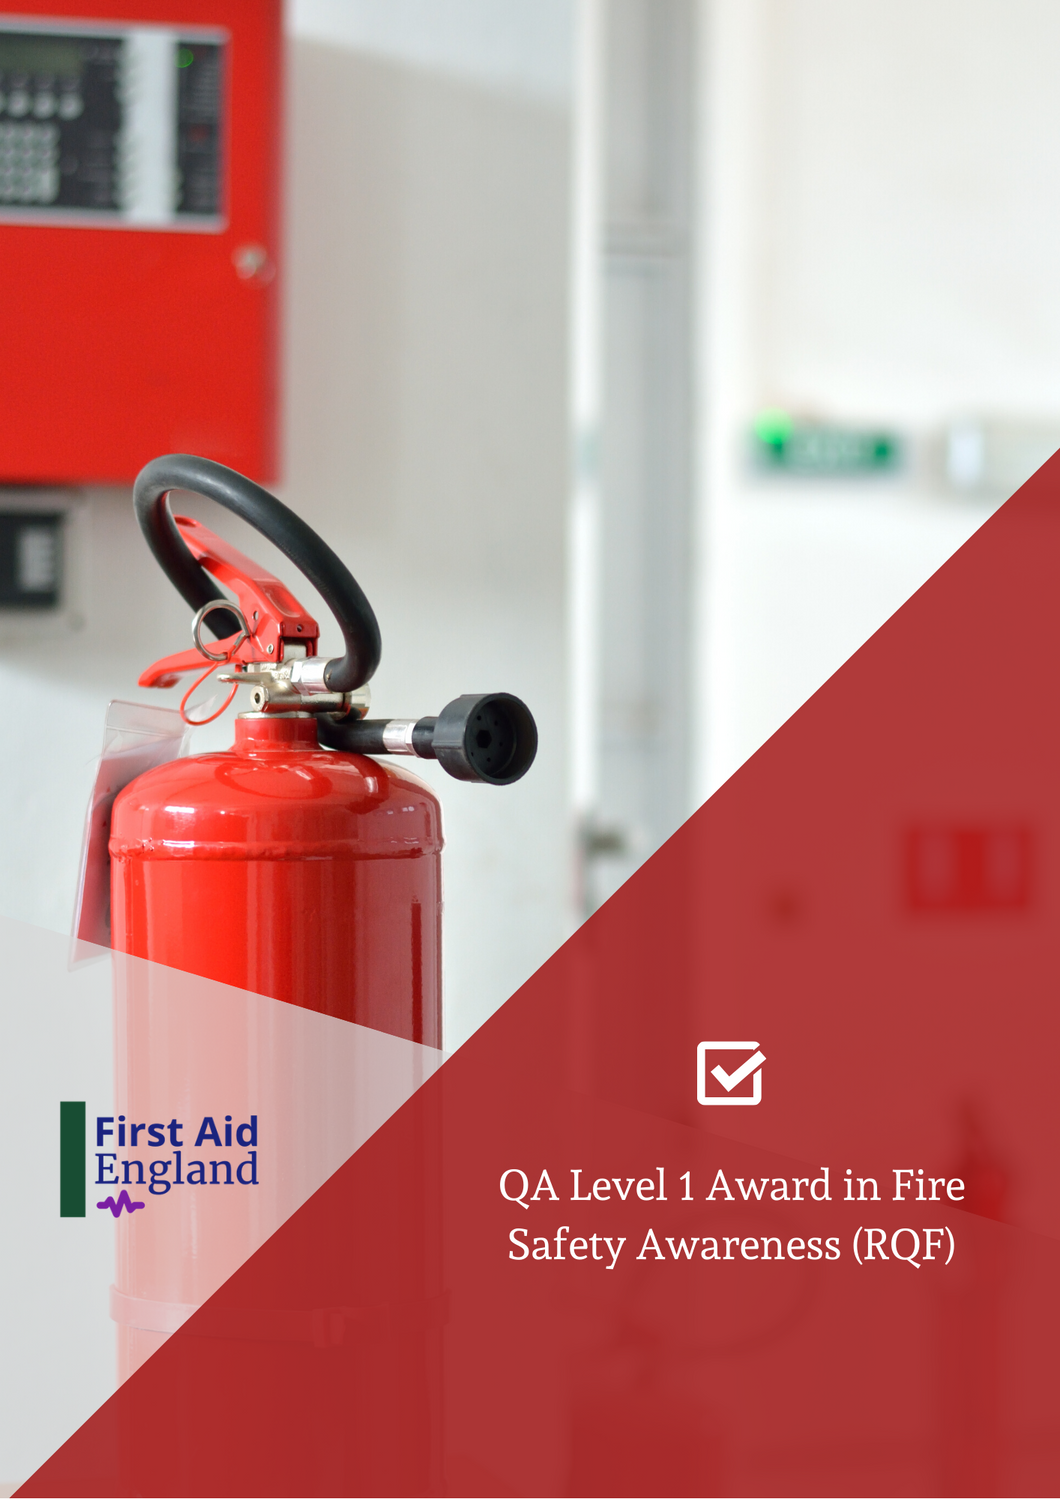 QA Level 1 Award Fire Safety Awareness (RQF)